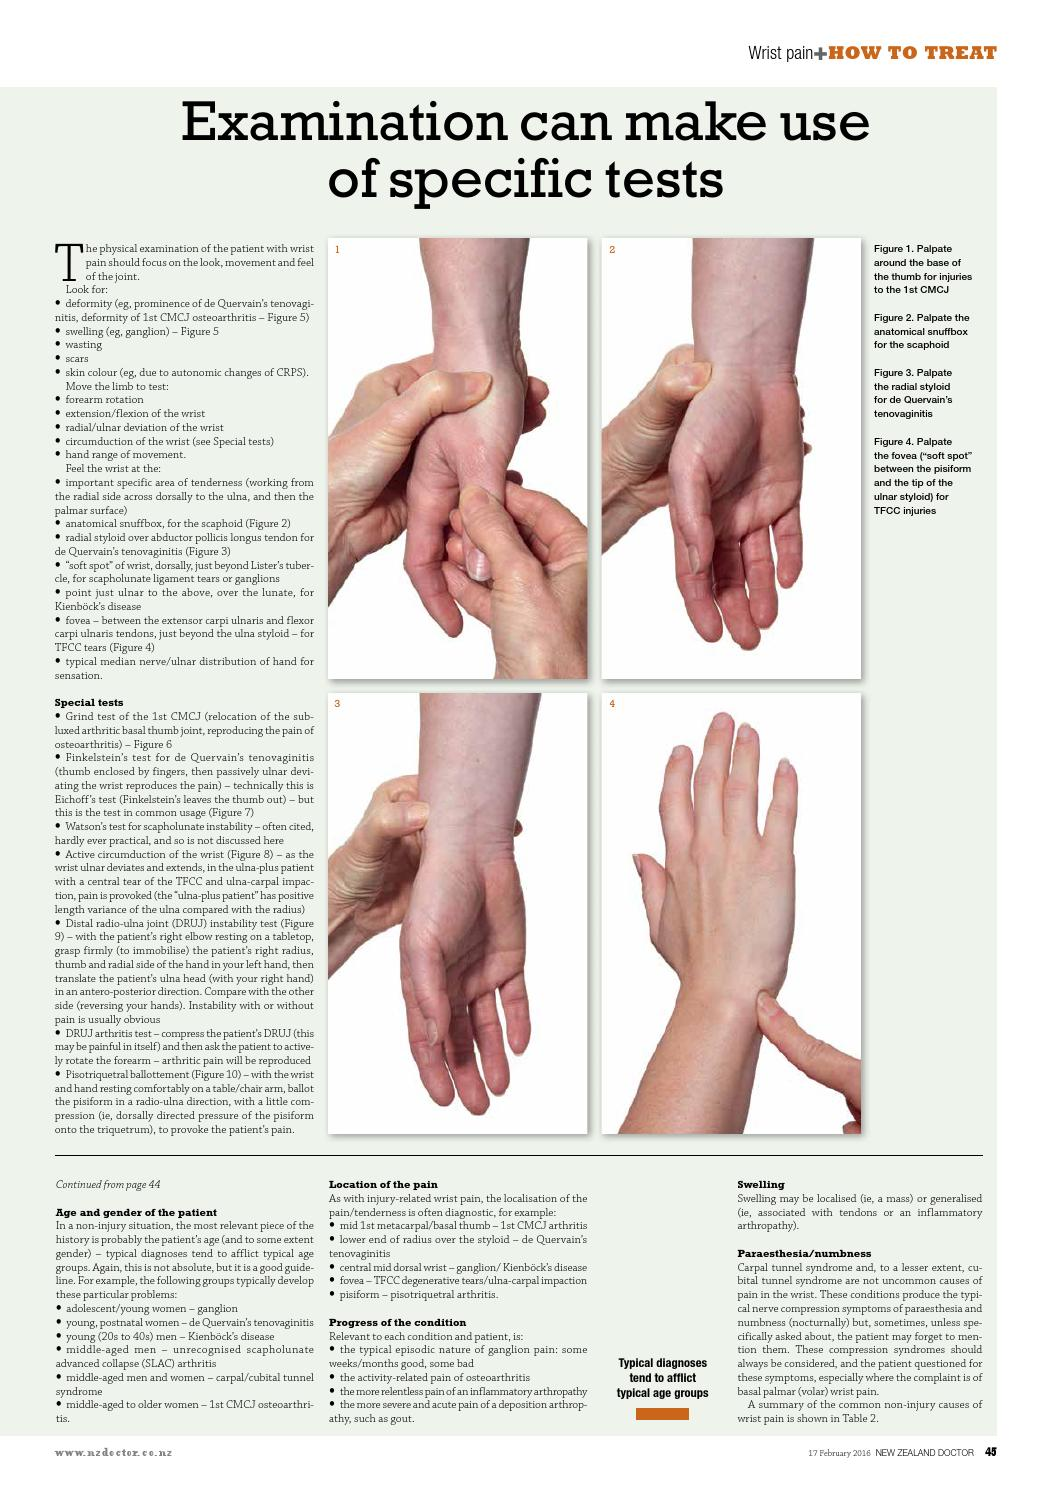 How to treat wrist pain by The Health Media - issuu